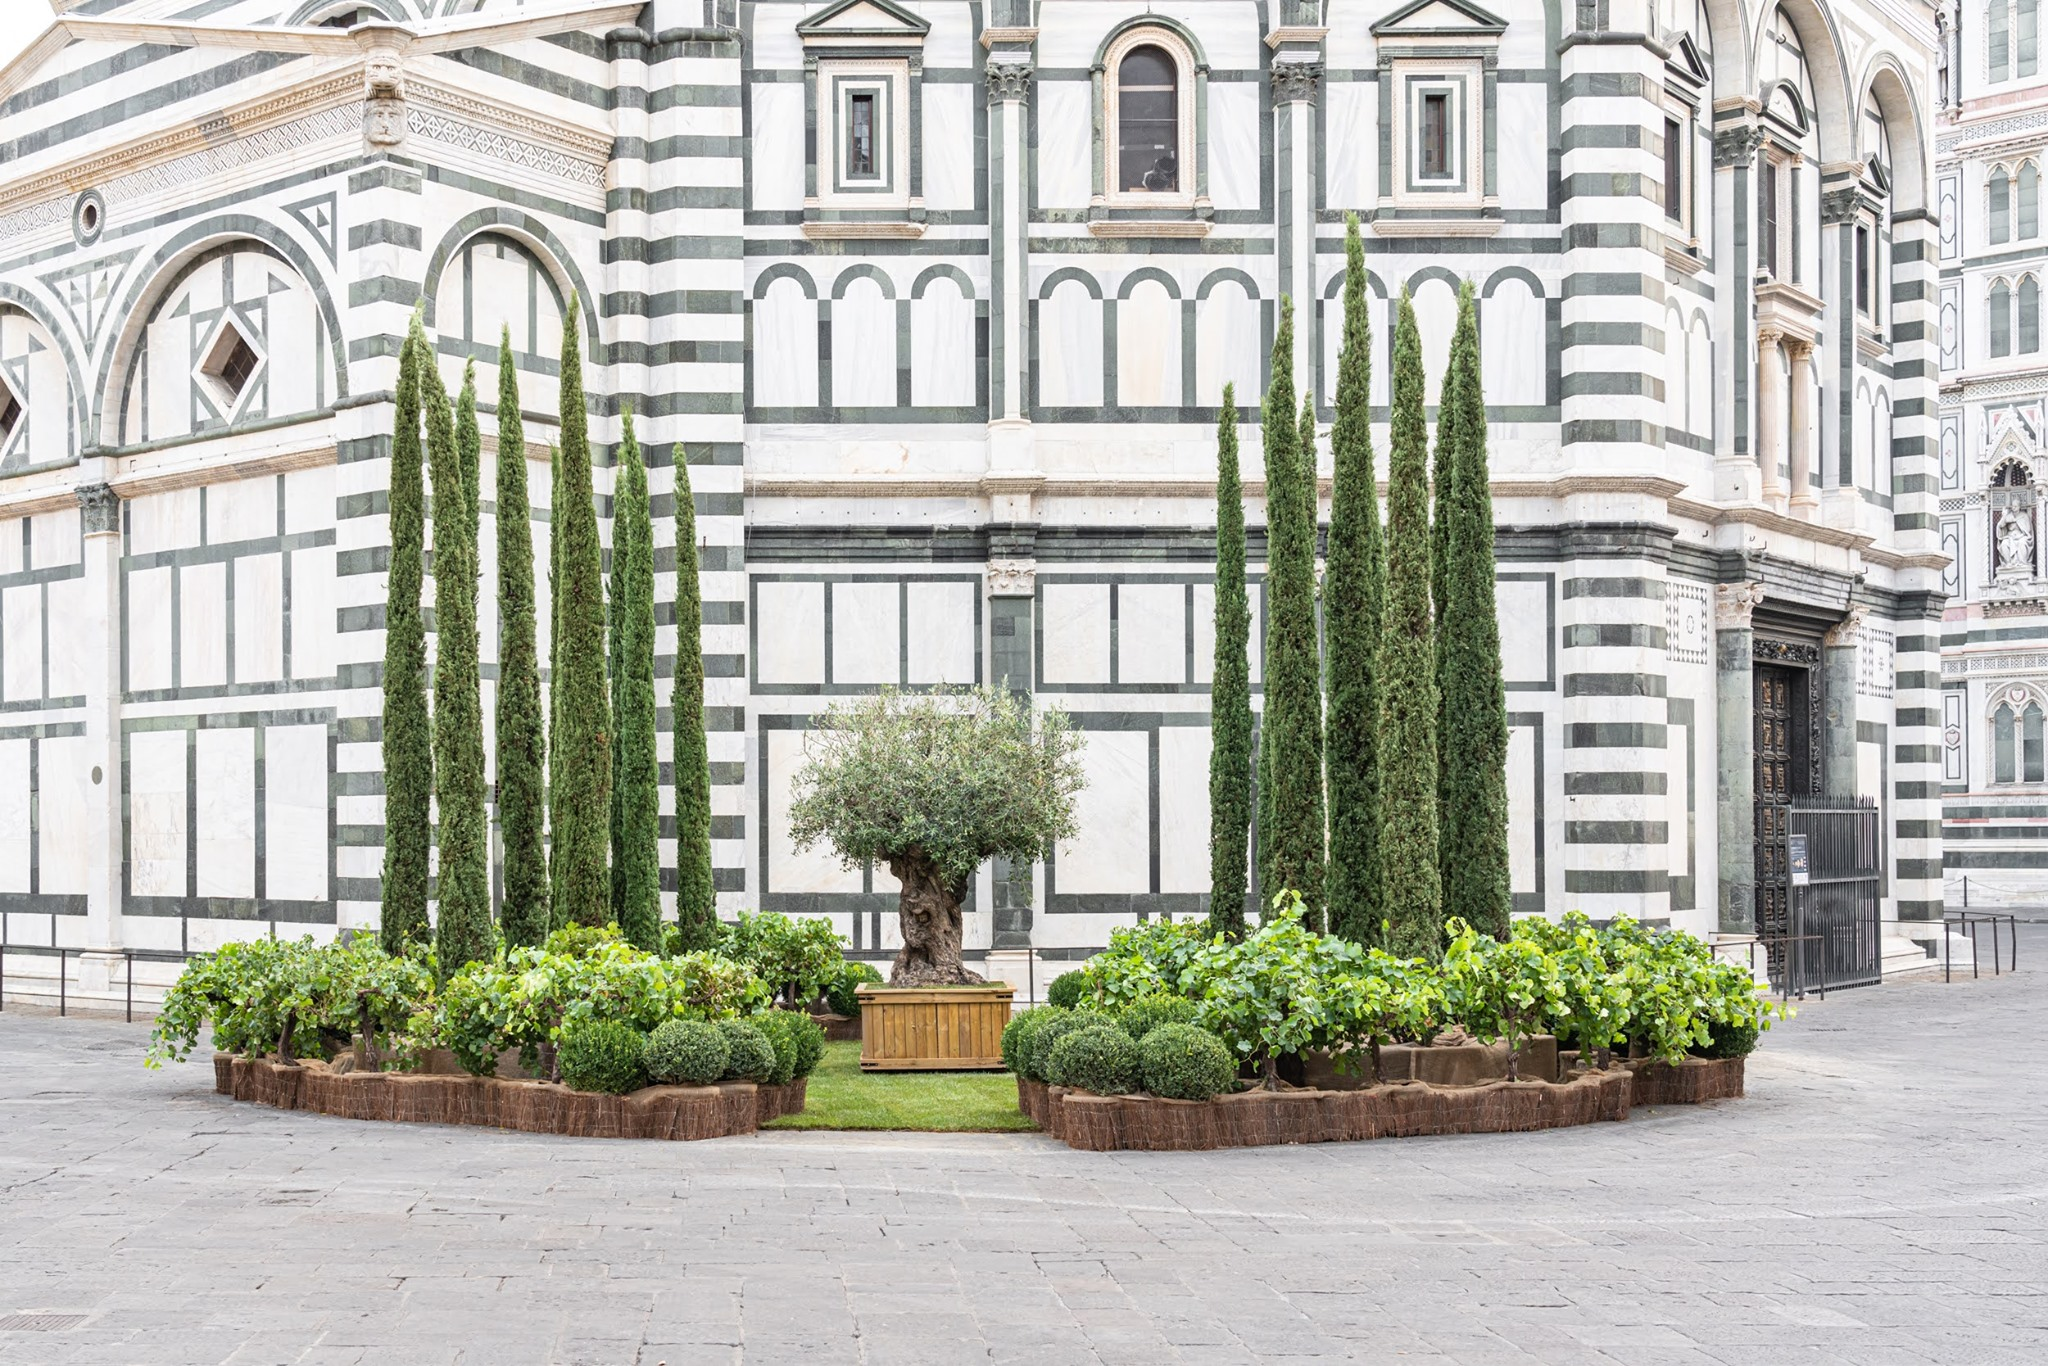 G20 Agriculture Summit in Florence: towards the future with sustainability